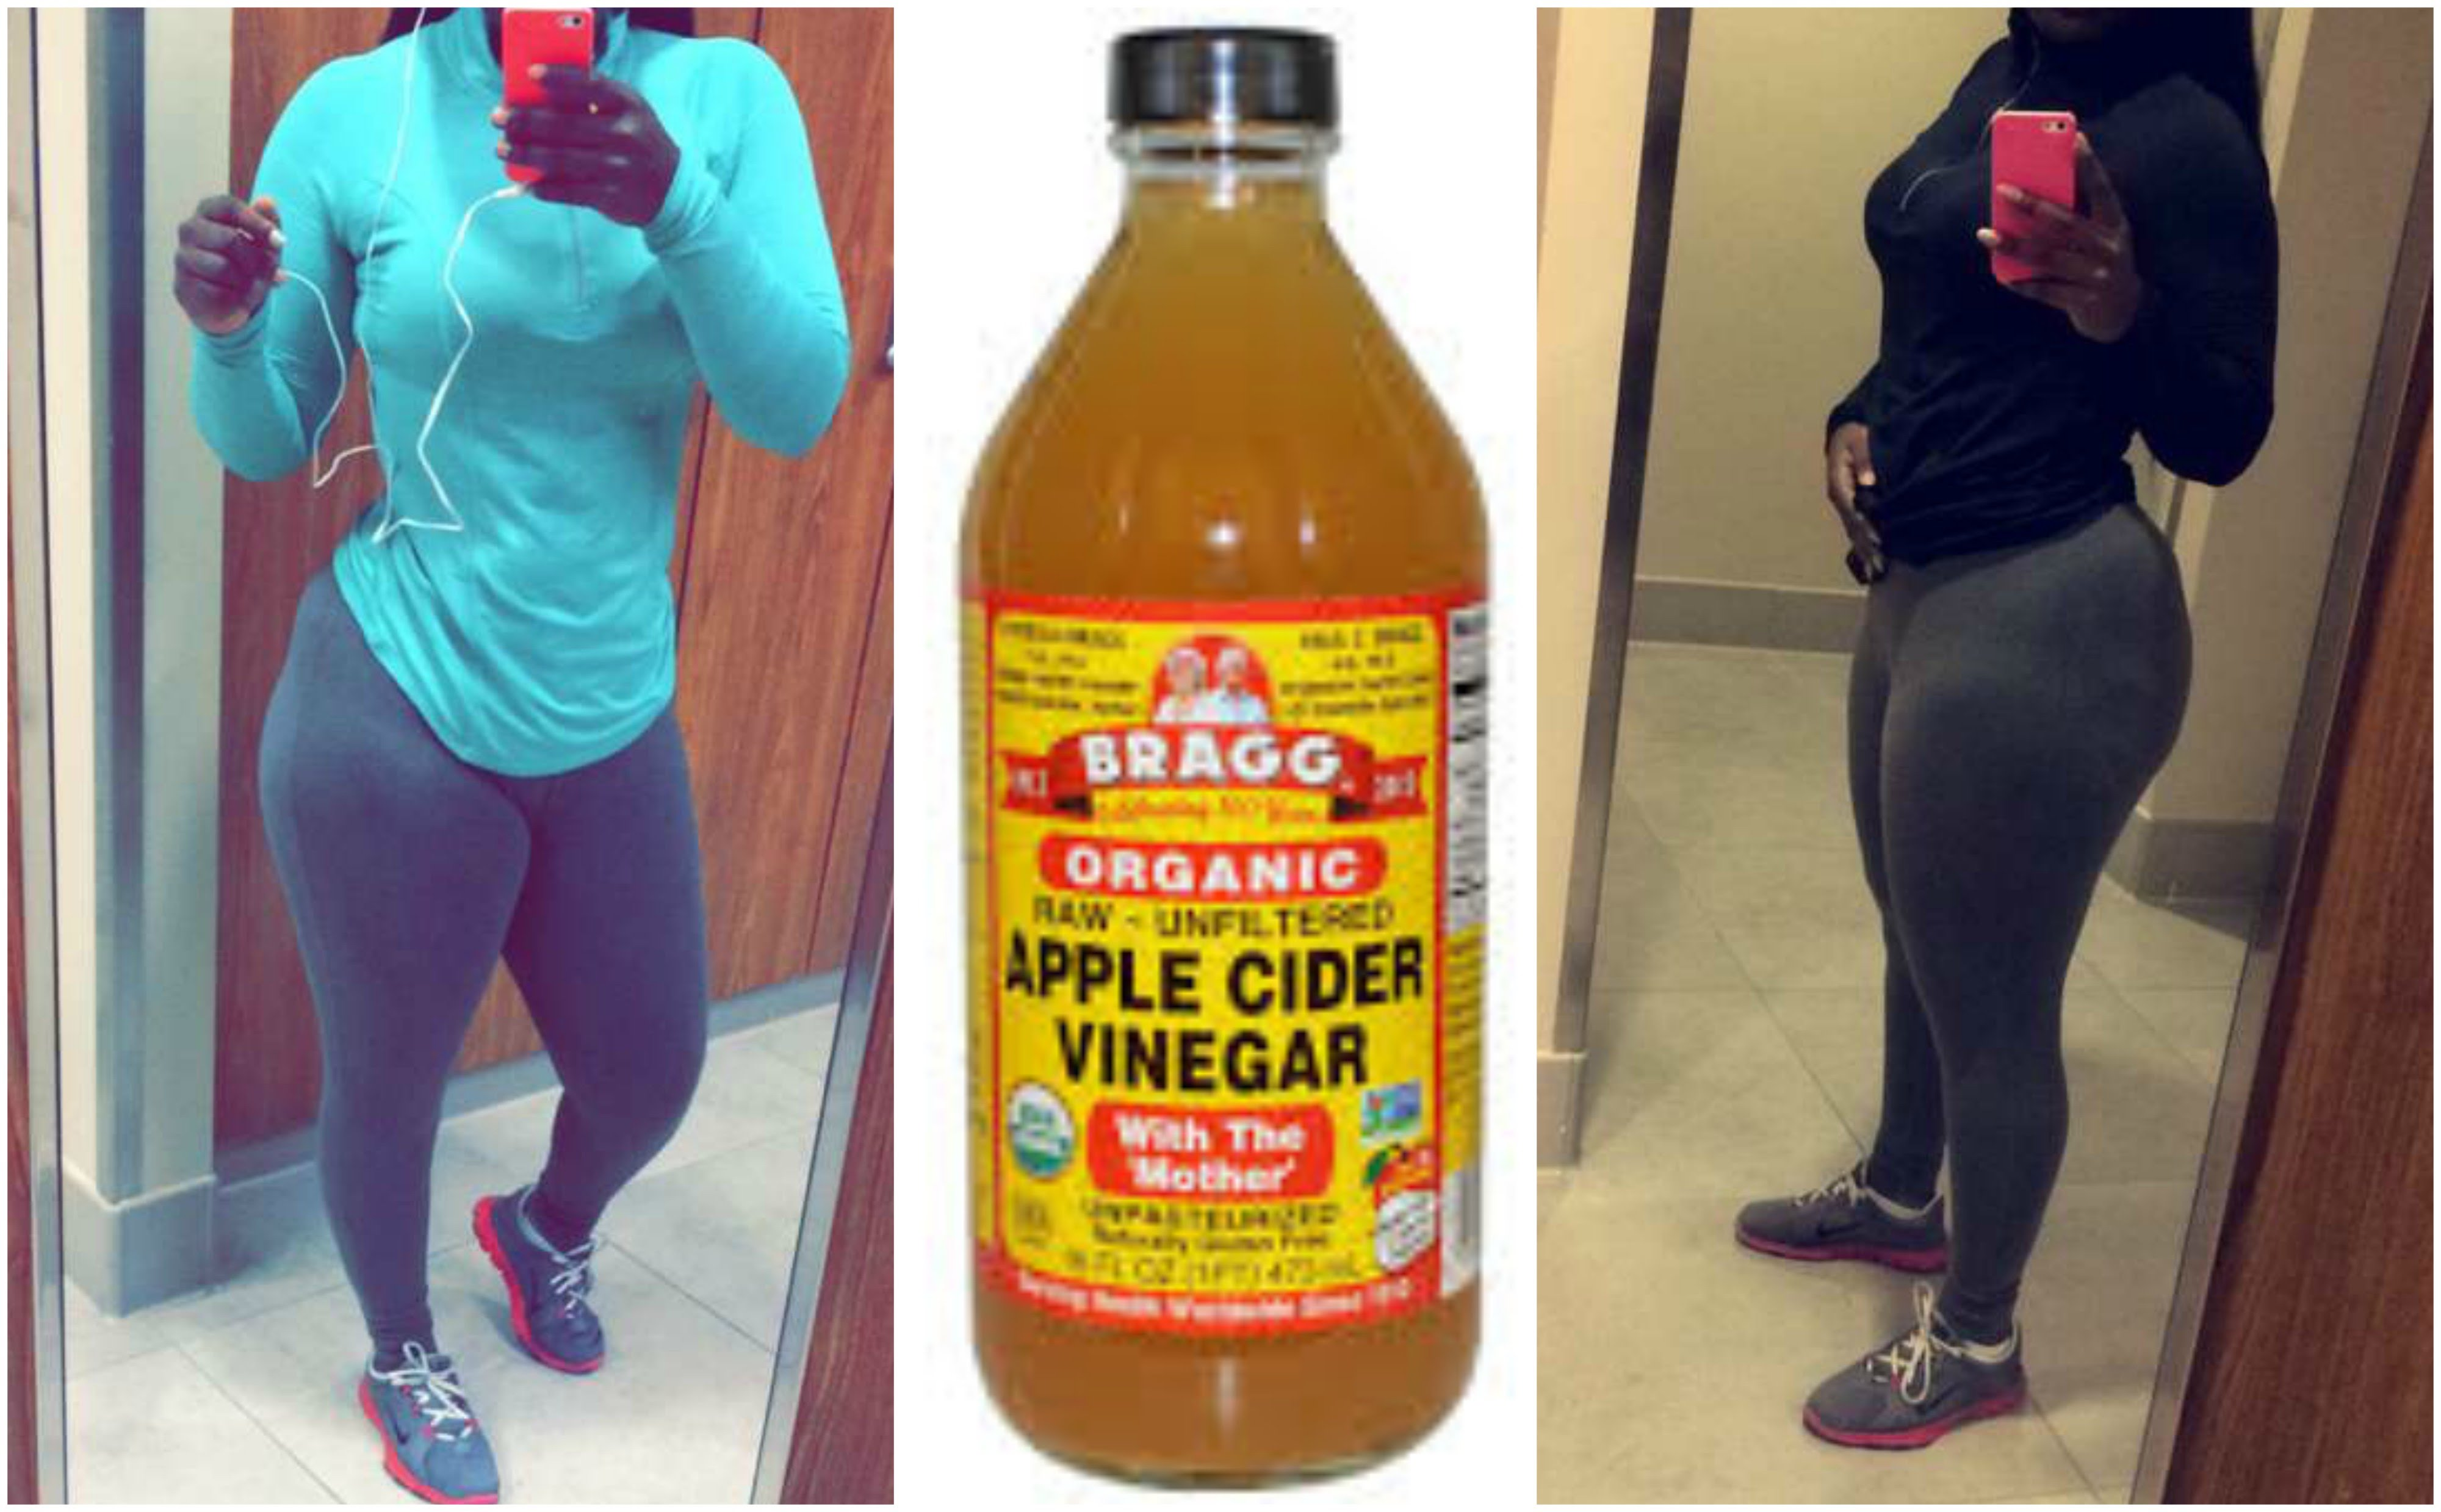 Losing weight with apple cider vinegar: is it possible